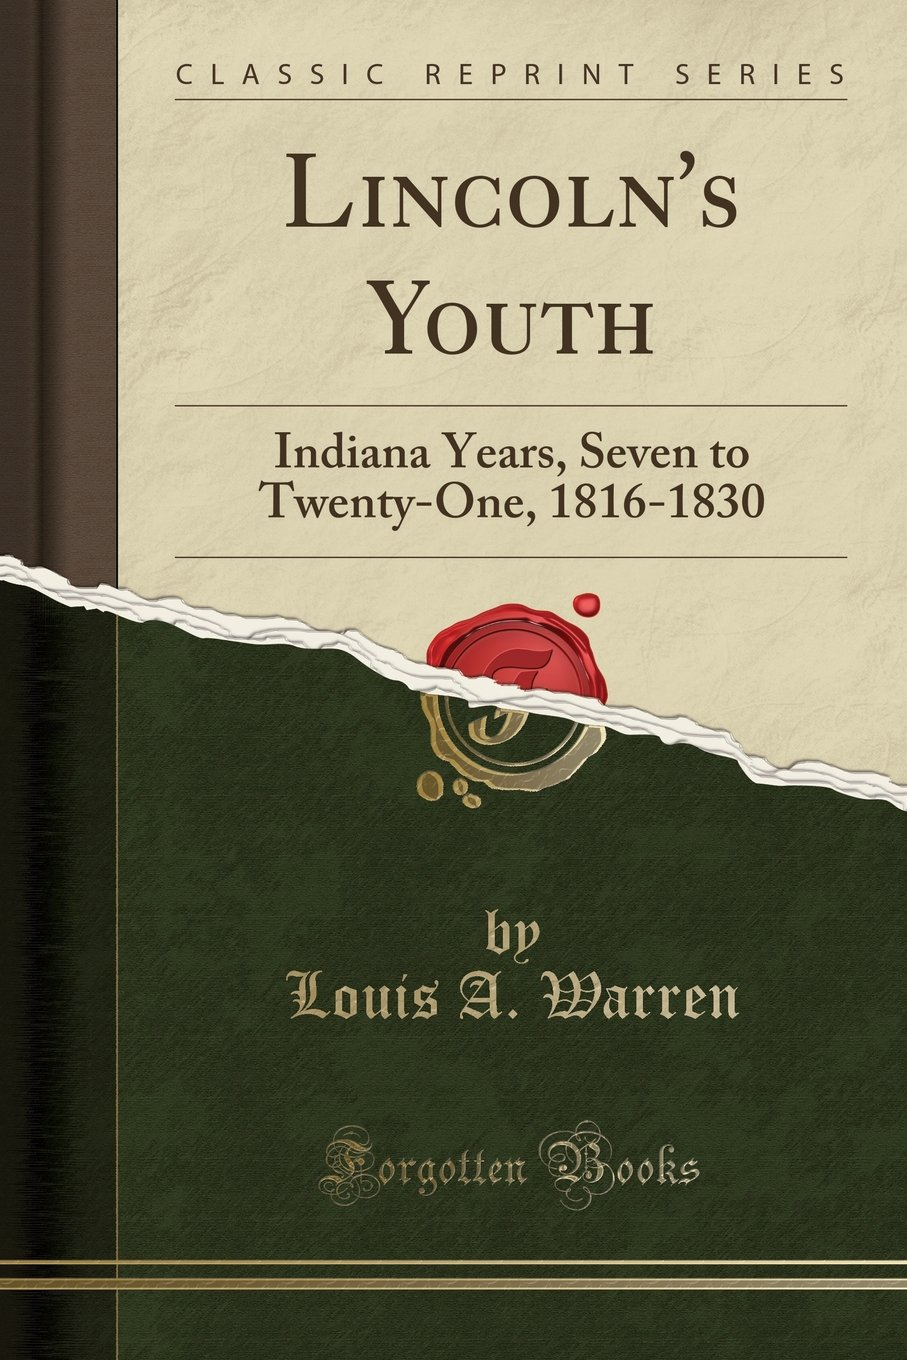 Lincoln's Youth: Indiana Years, Seven to Twenty-One, 1816-1830 (Classic Reprint)